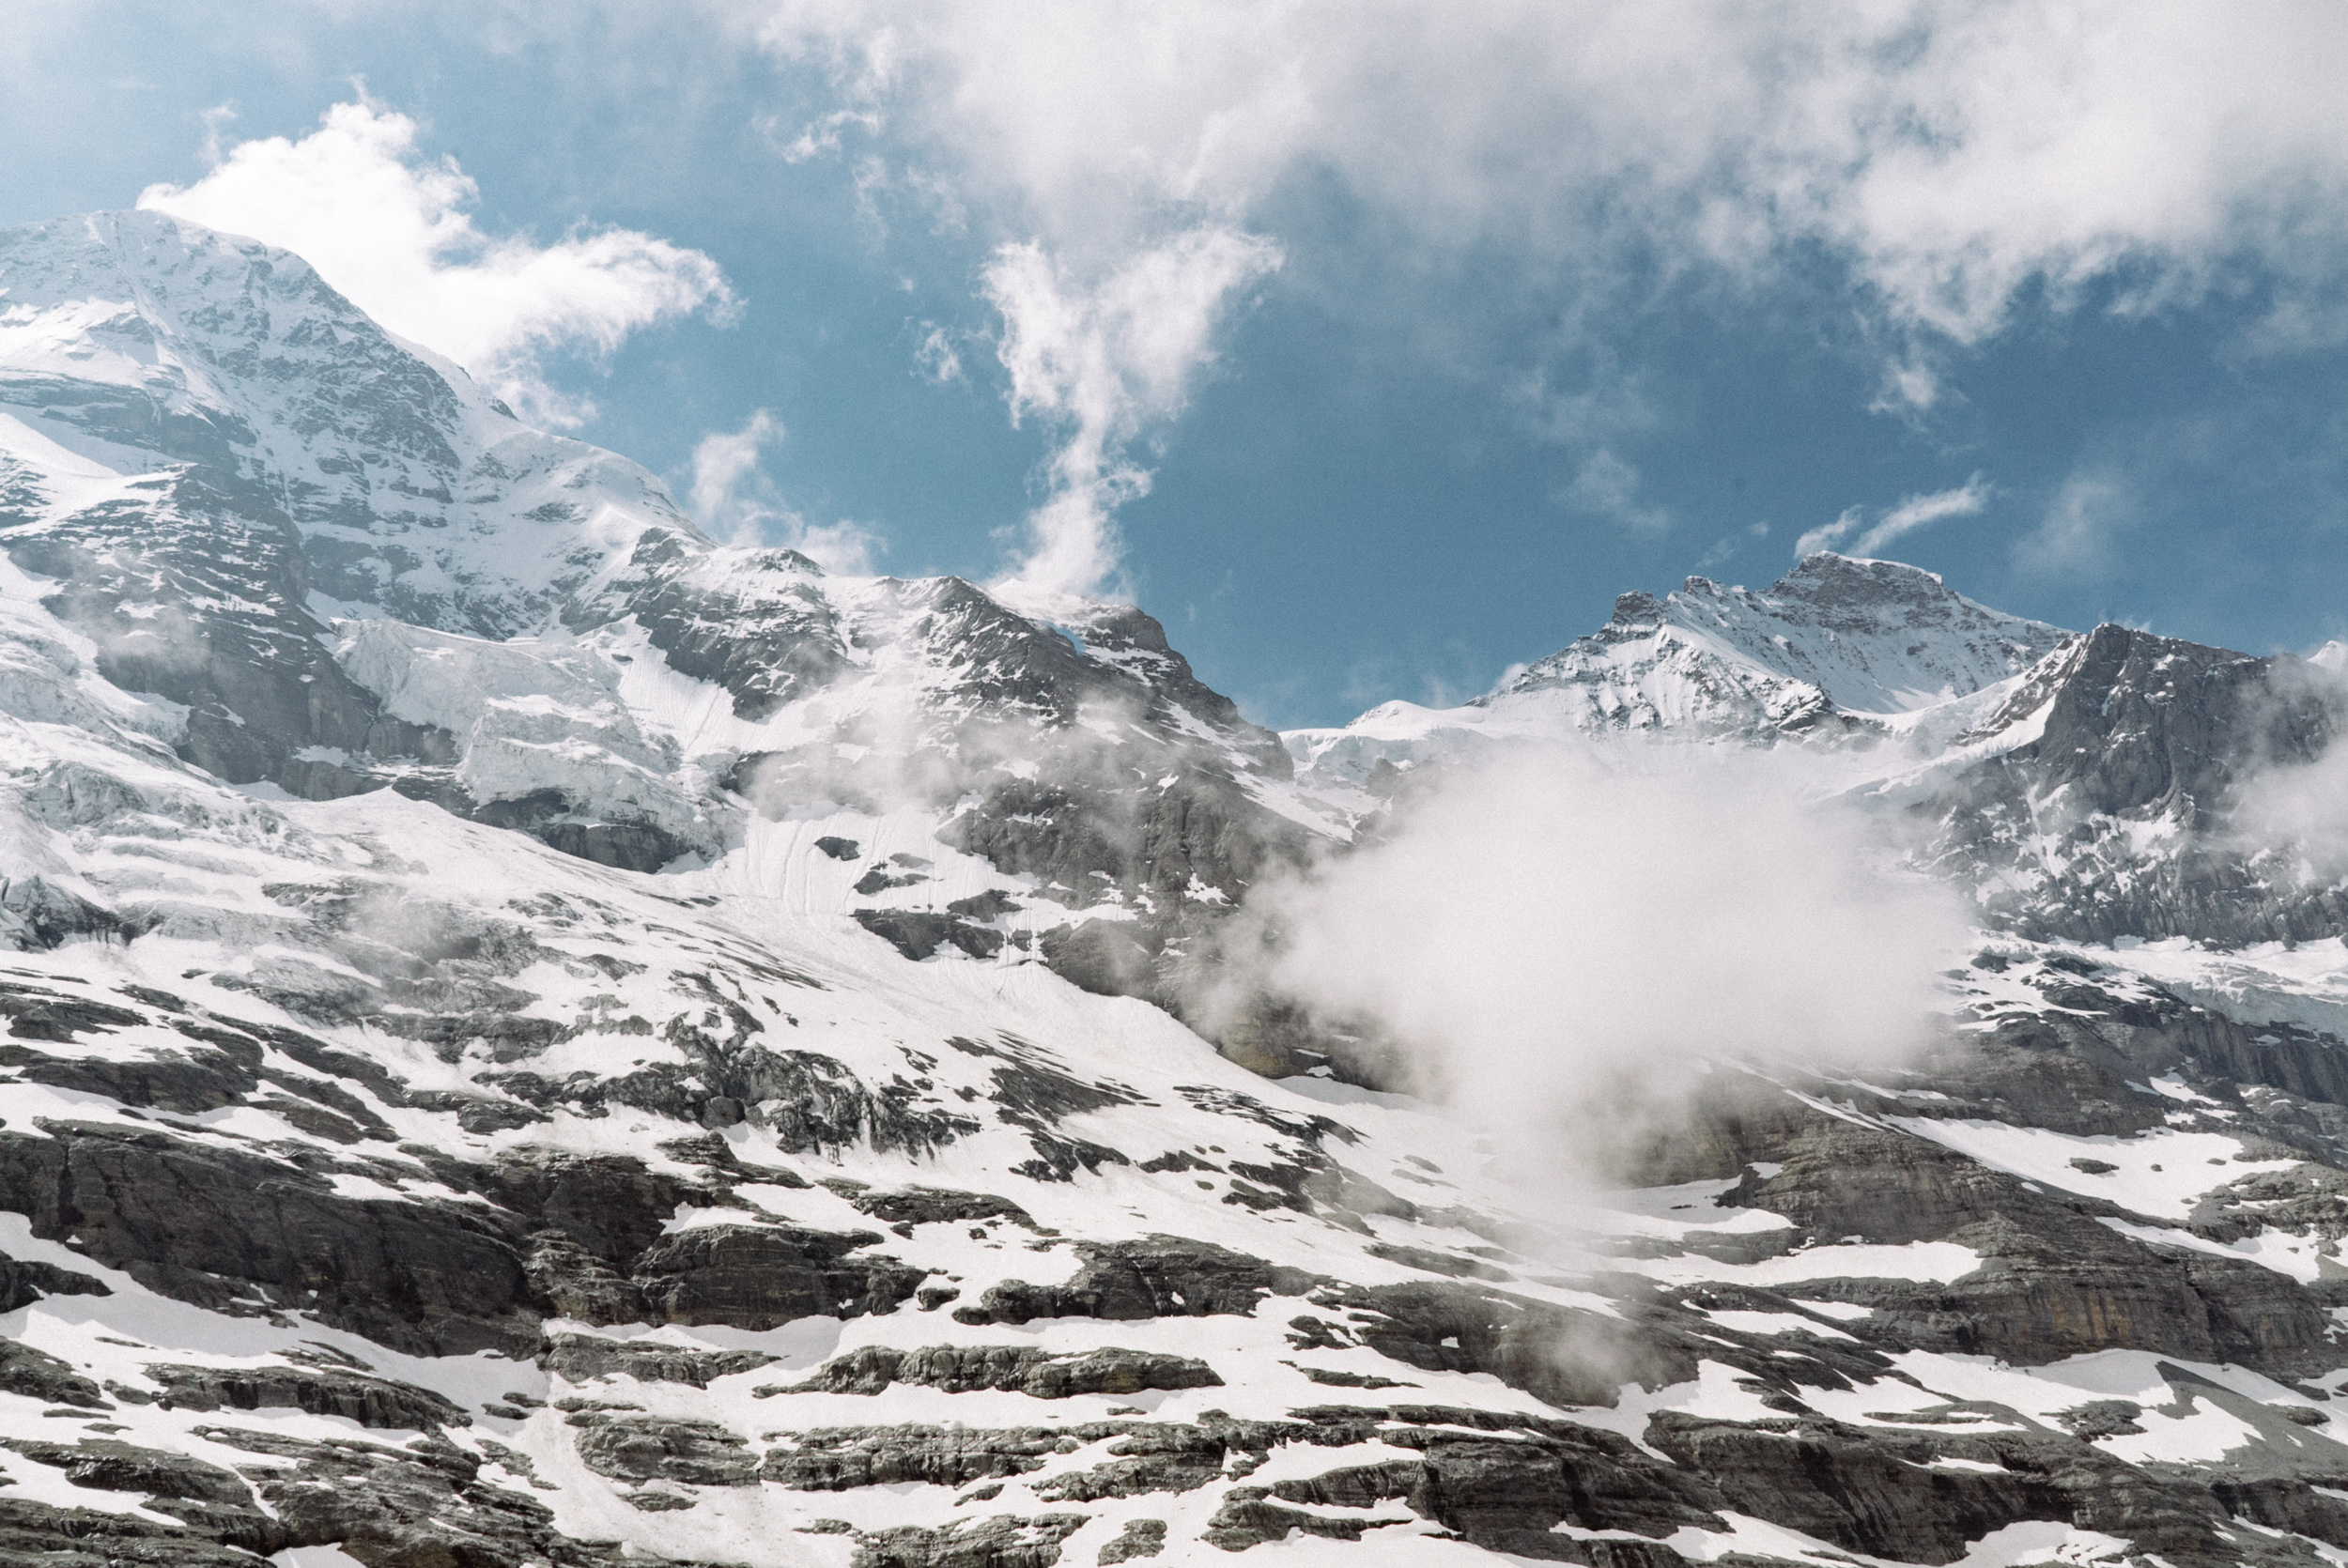 The mountain view as we ascend to Jungfraujoch